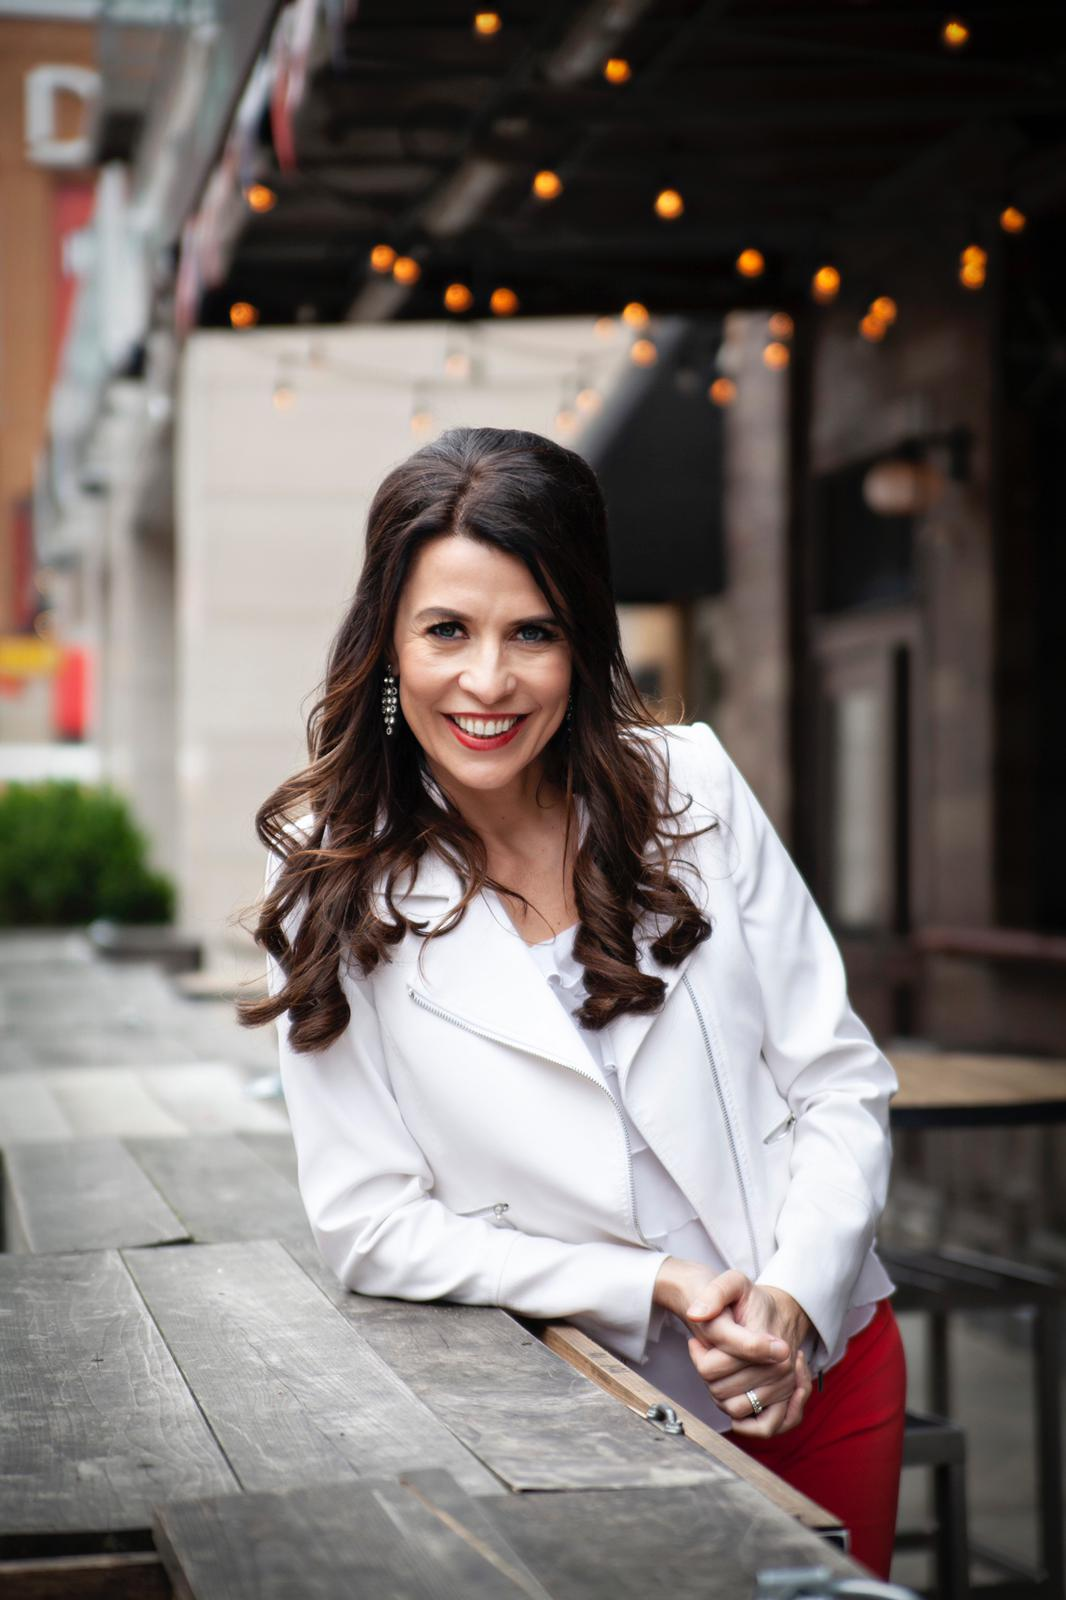 How Monika Deroussel Gained Success in the Real Estate Industry